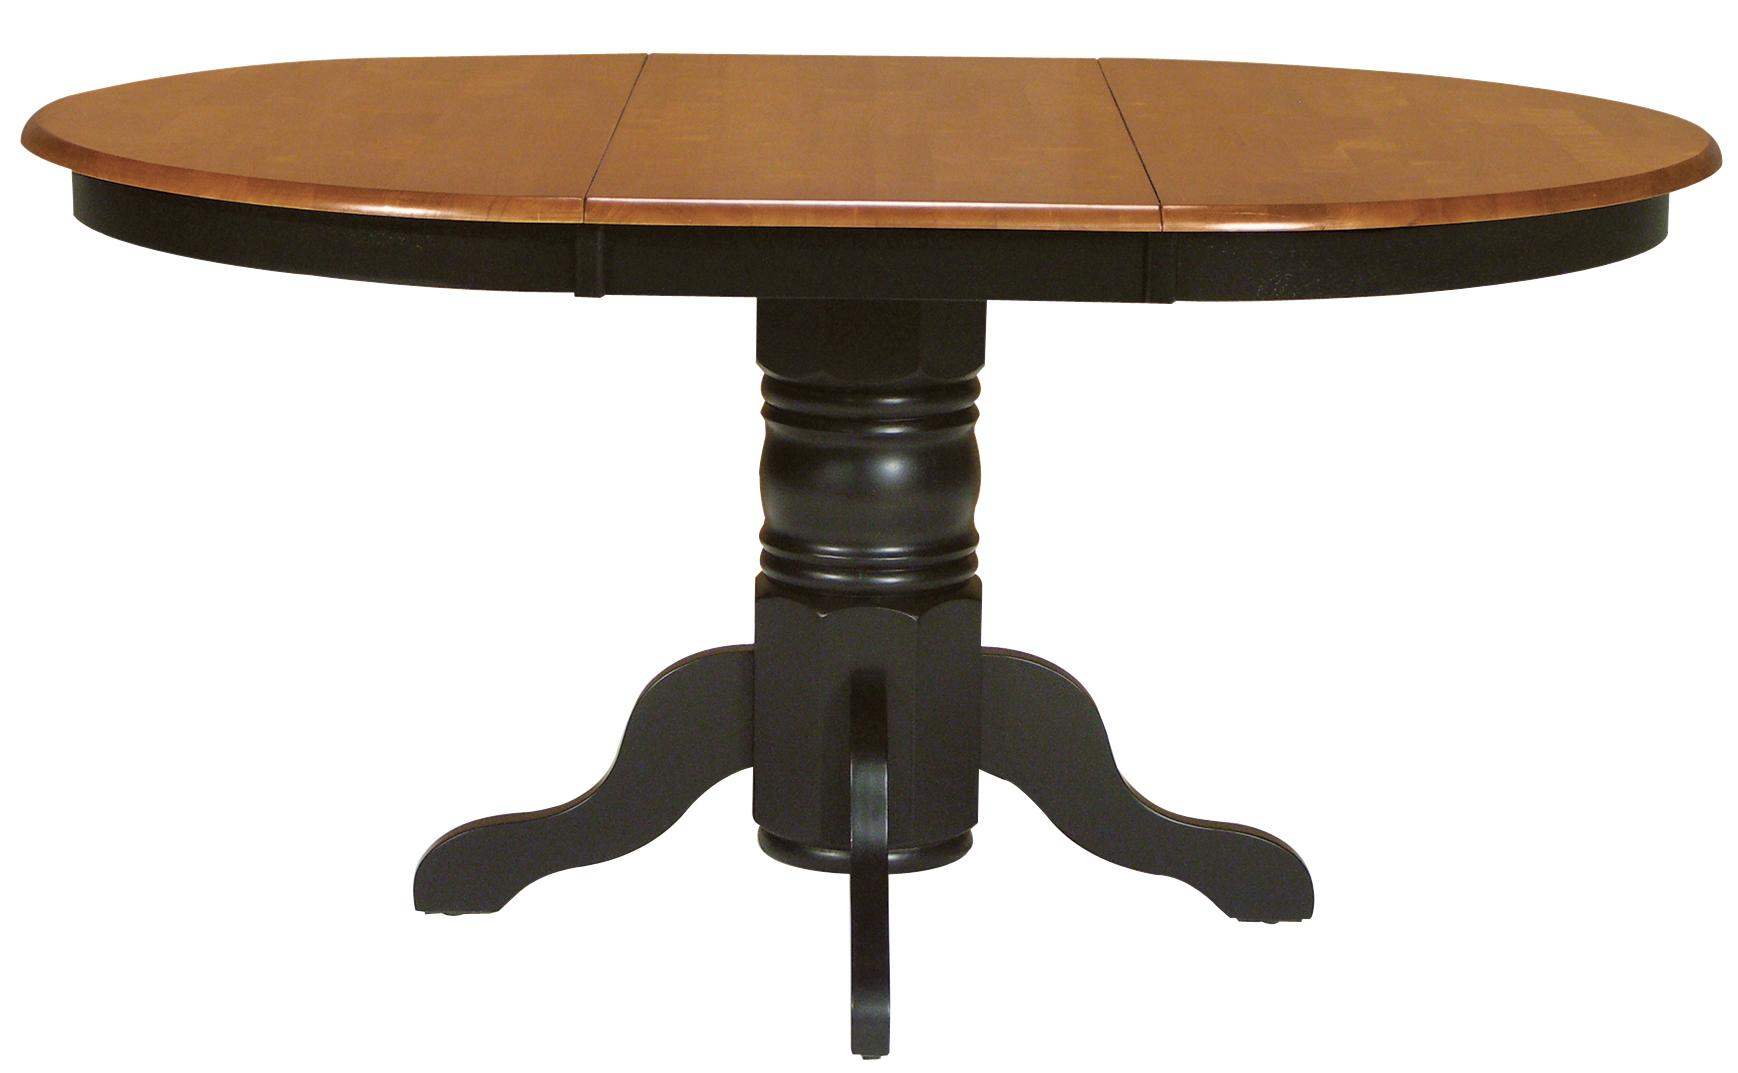 Two Toned Oval Dining Table With Turned Pedestal Base By